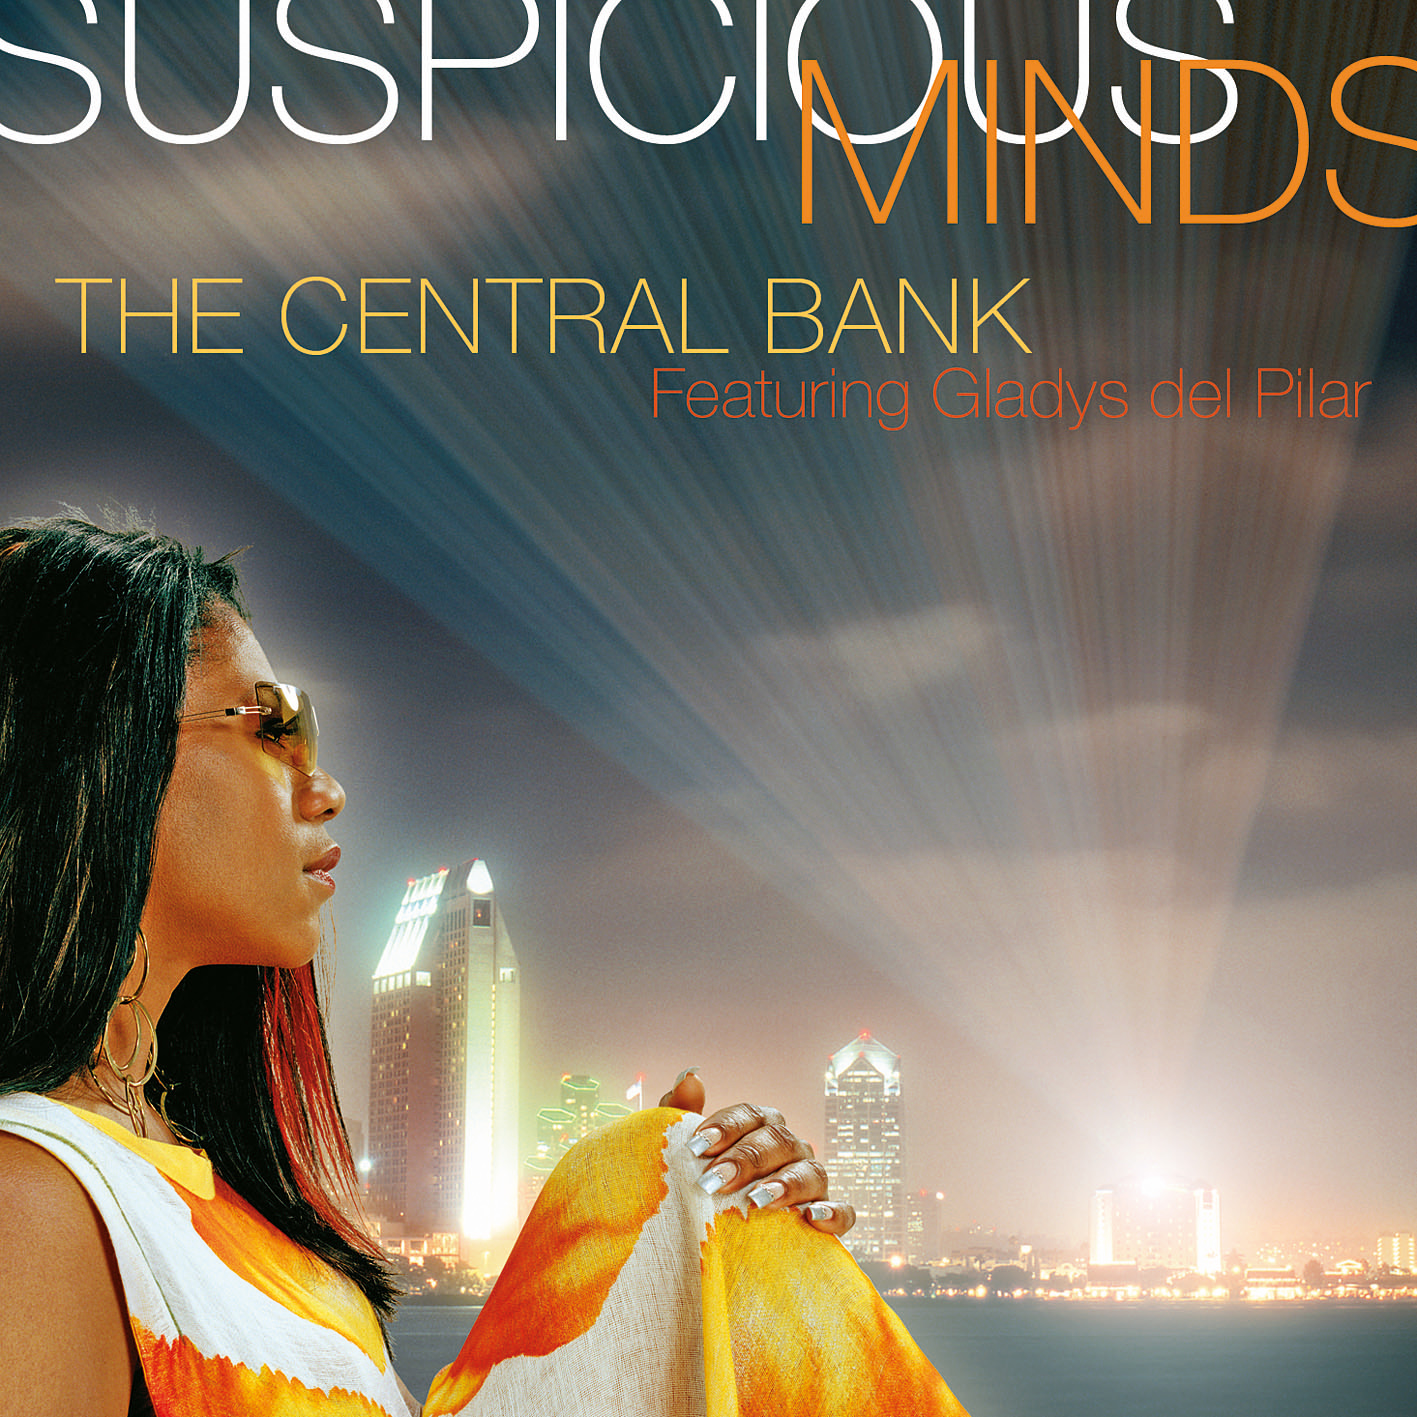 The Central Bank - Suspicious Minds Single MP3 Cover